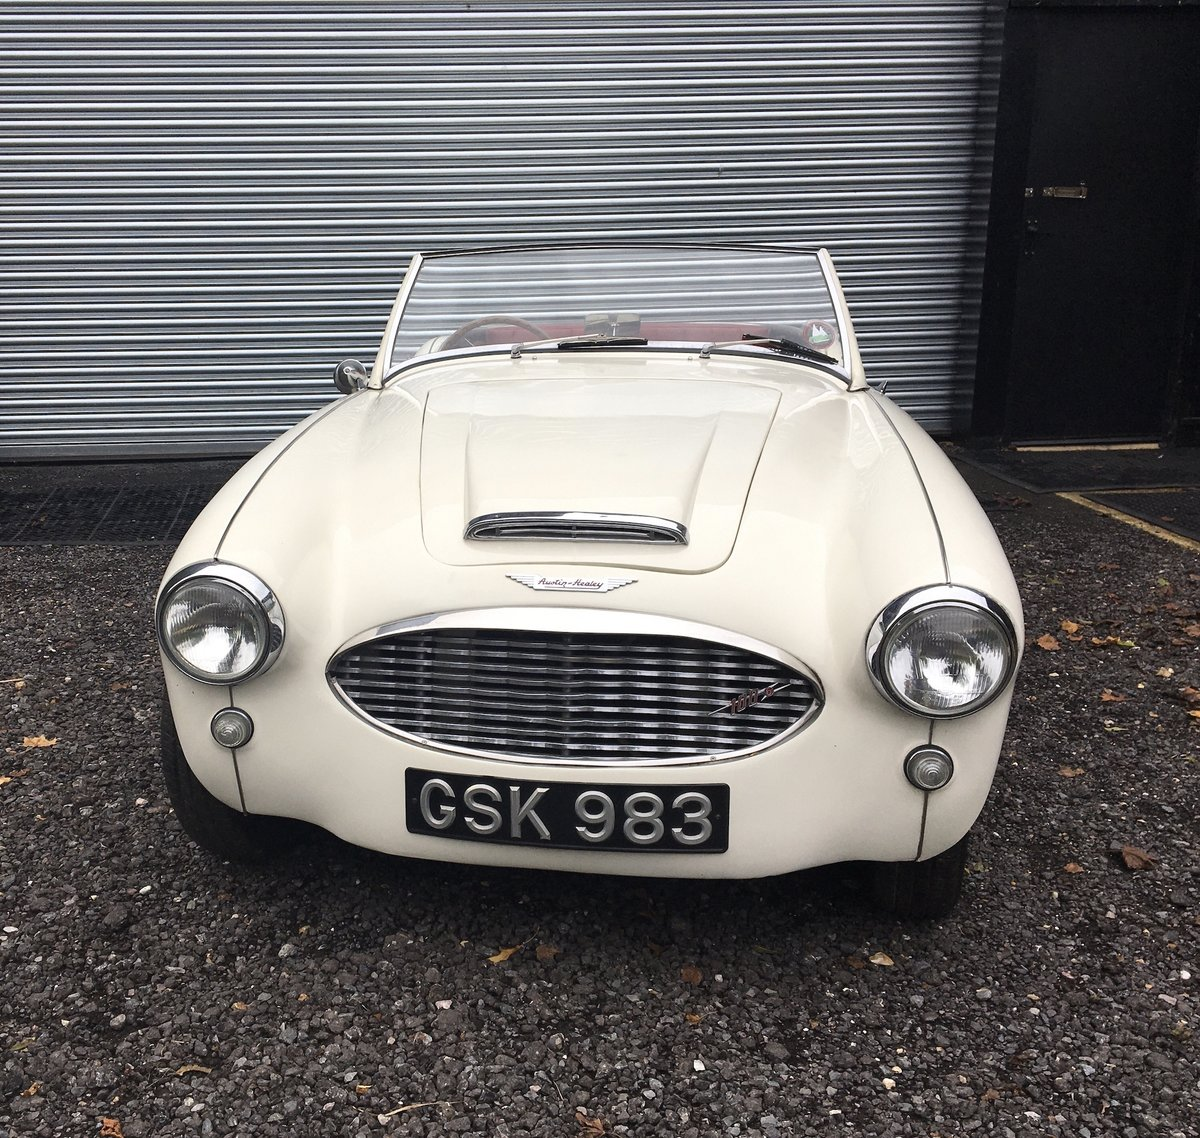 1959 Austin-Healey 100/6 (3000 engine) For Sale (picture 6 of 6)